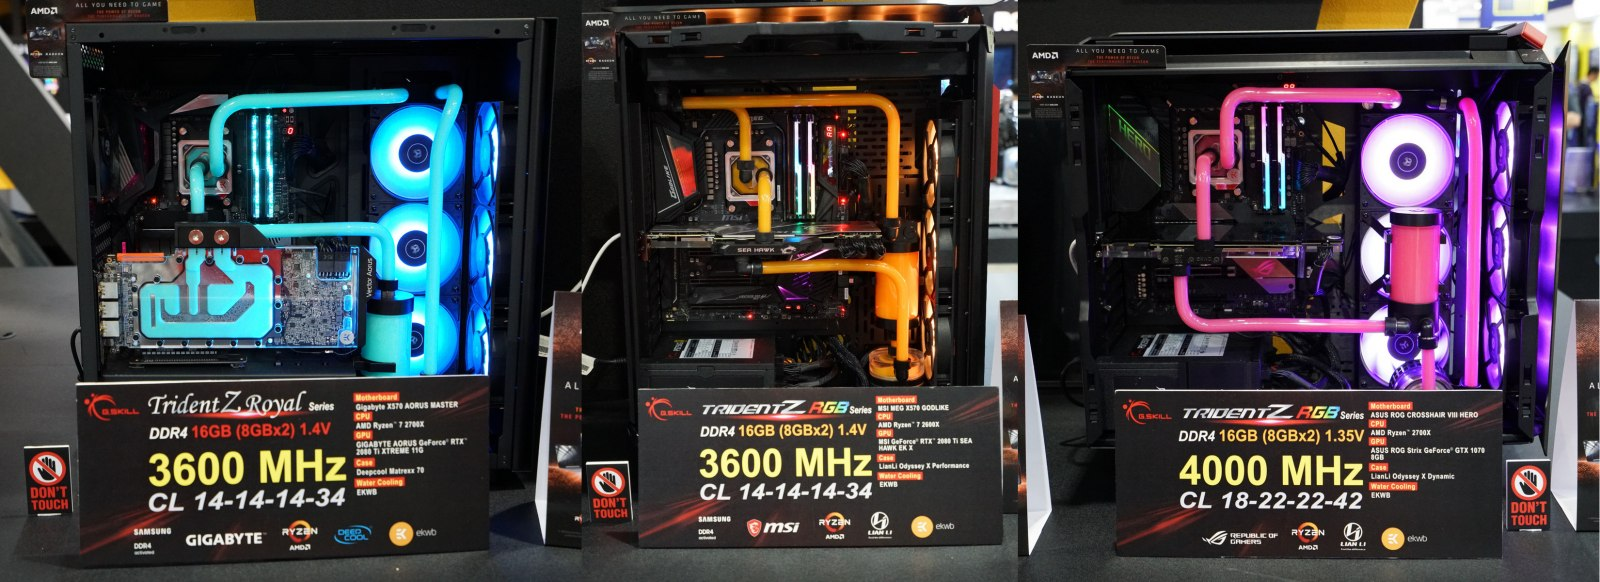 G Skill Computex Live Demos Include Massive Capacity and